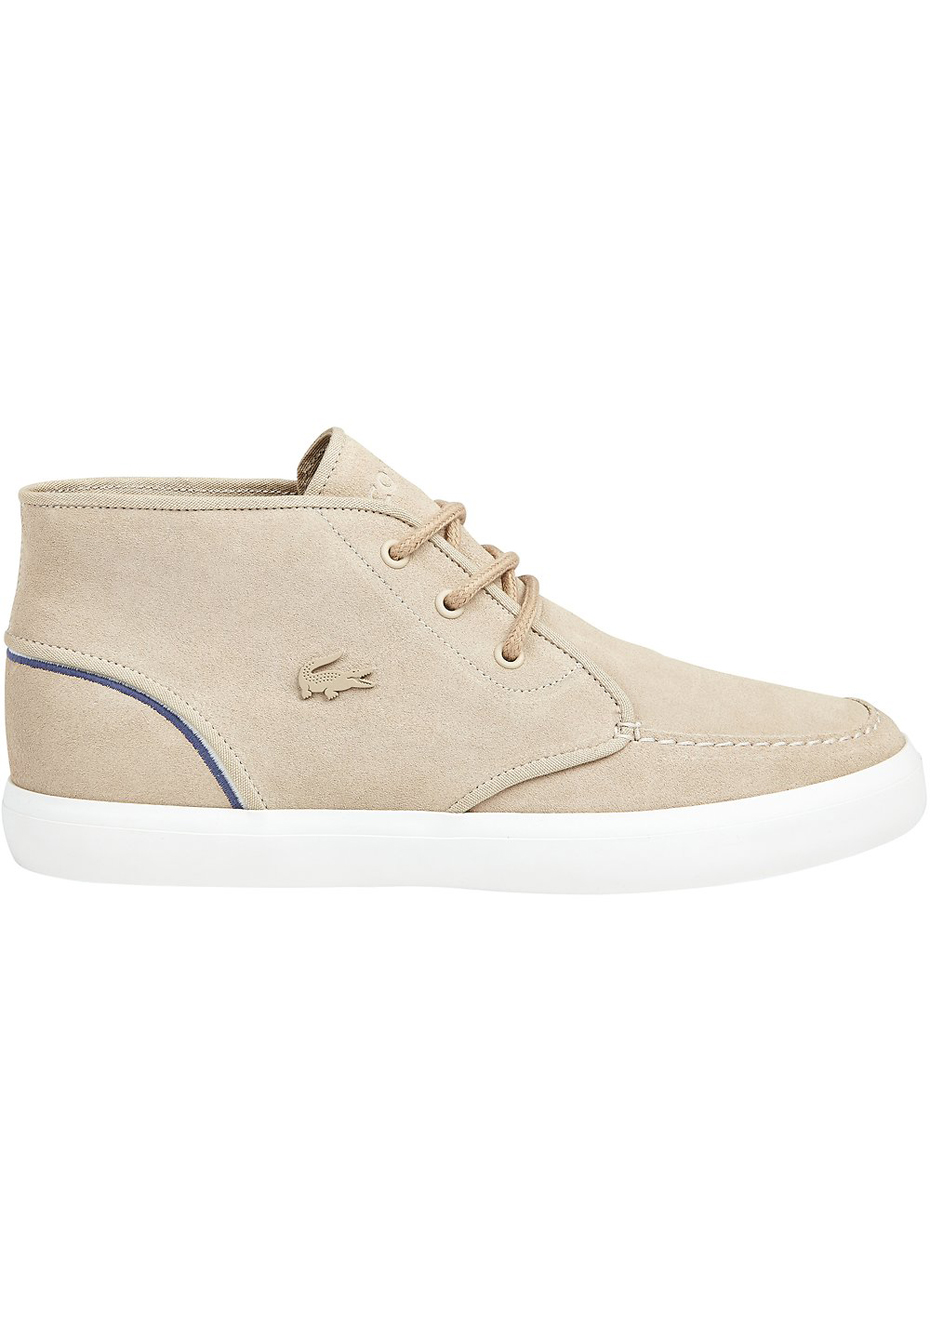 3793017c0 Natural Shoes Mid 316 Brand Mens Sevrin Big Lacoste 1 ATqnpZB